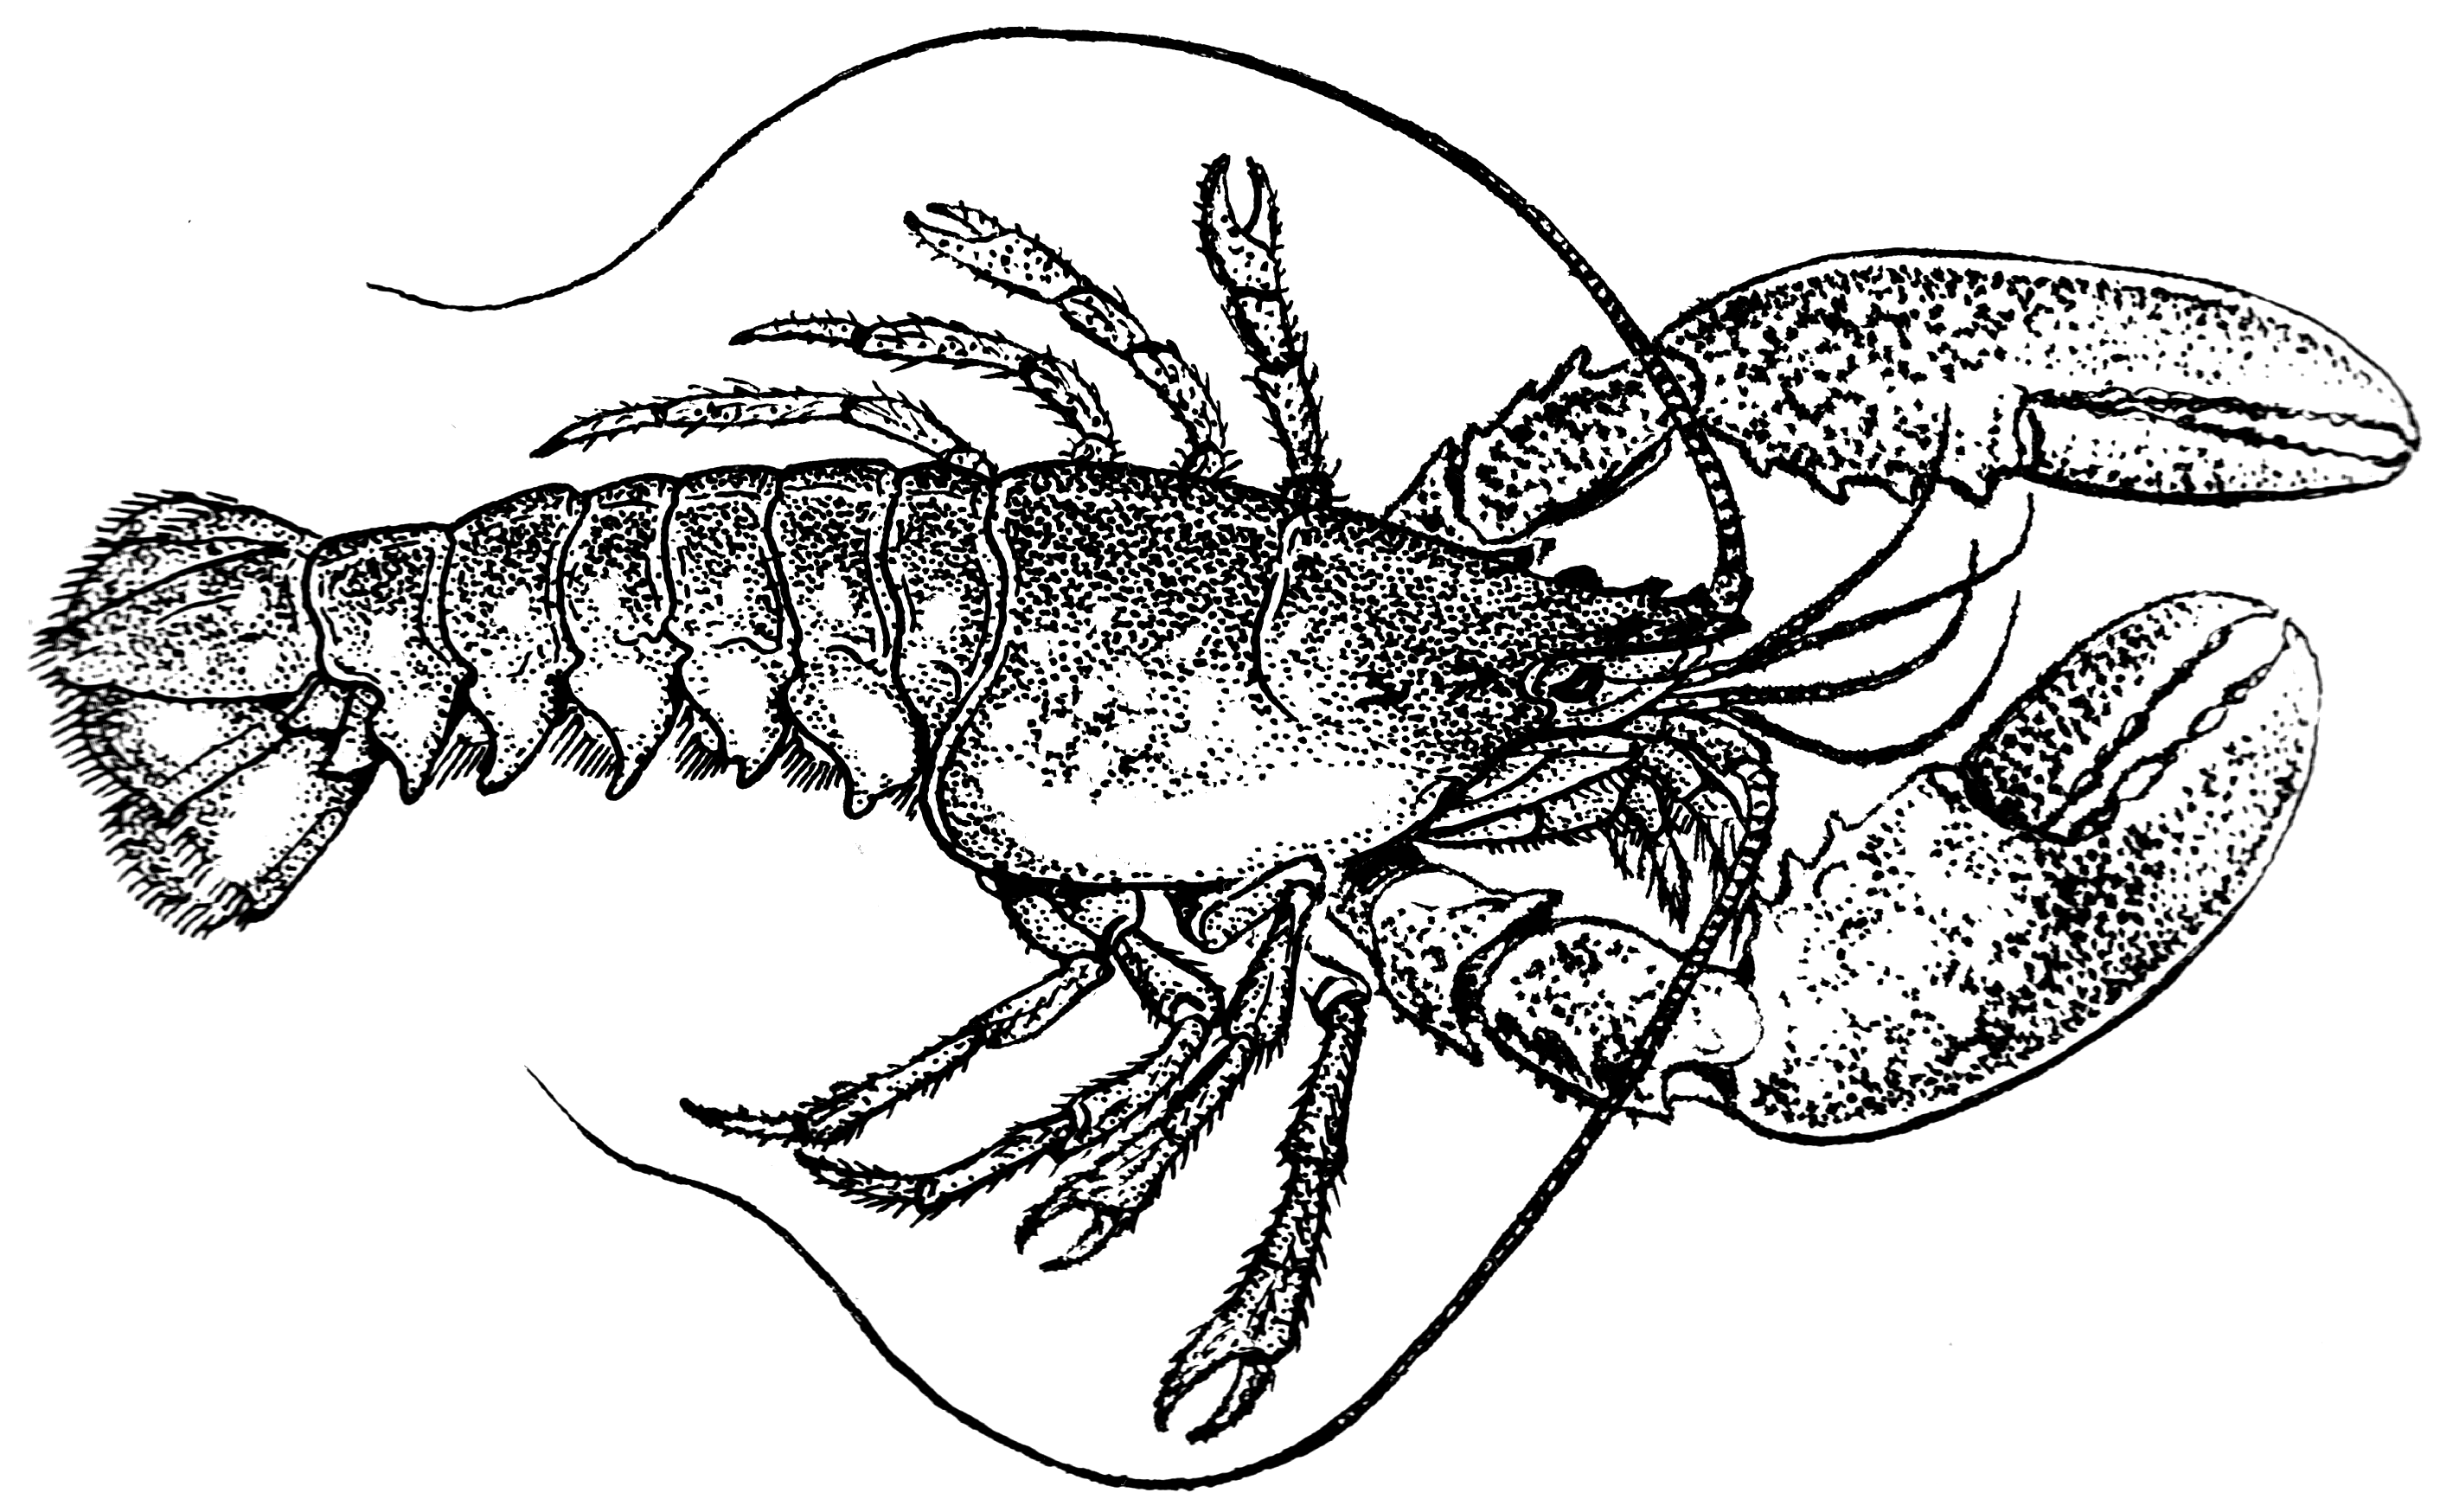 File:Lobster (PSF).png - Wikimedia Commons